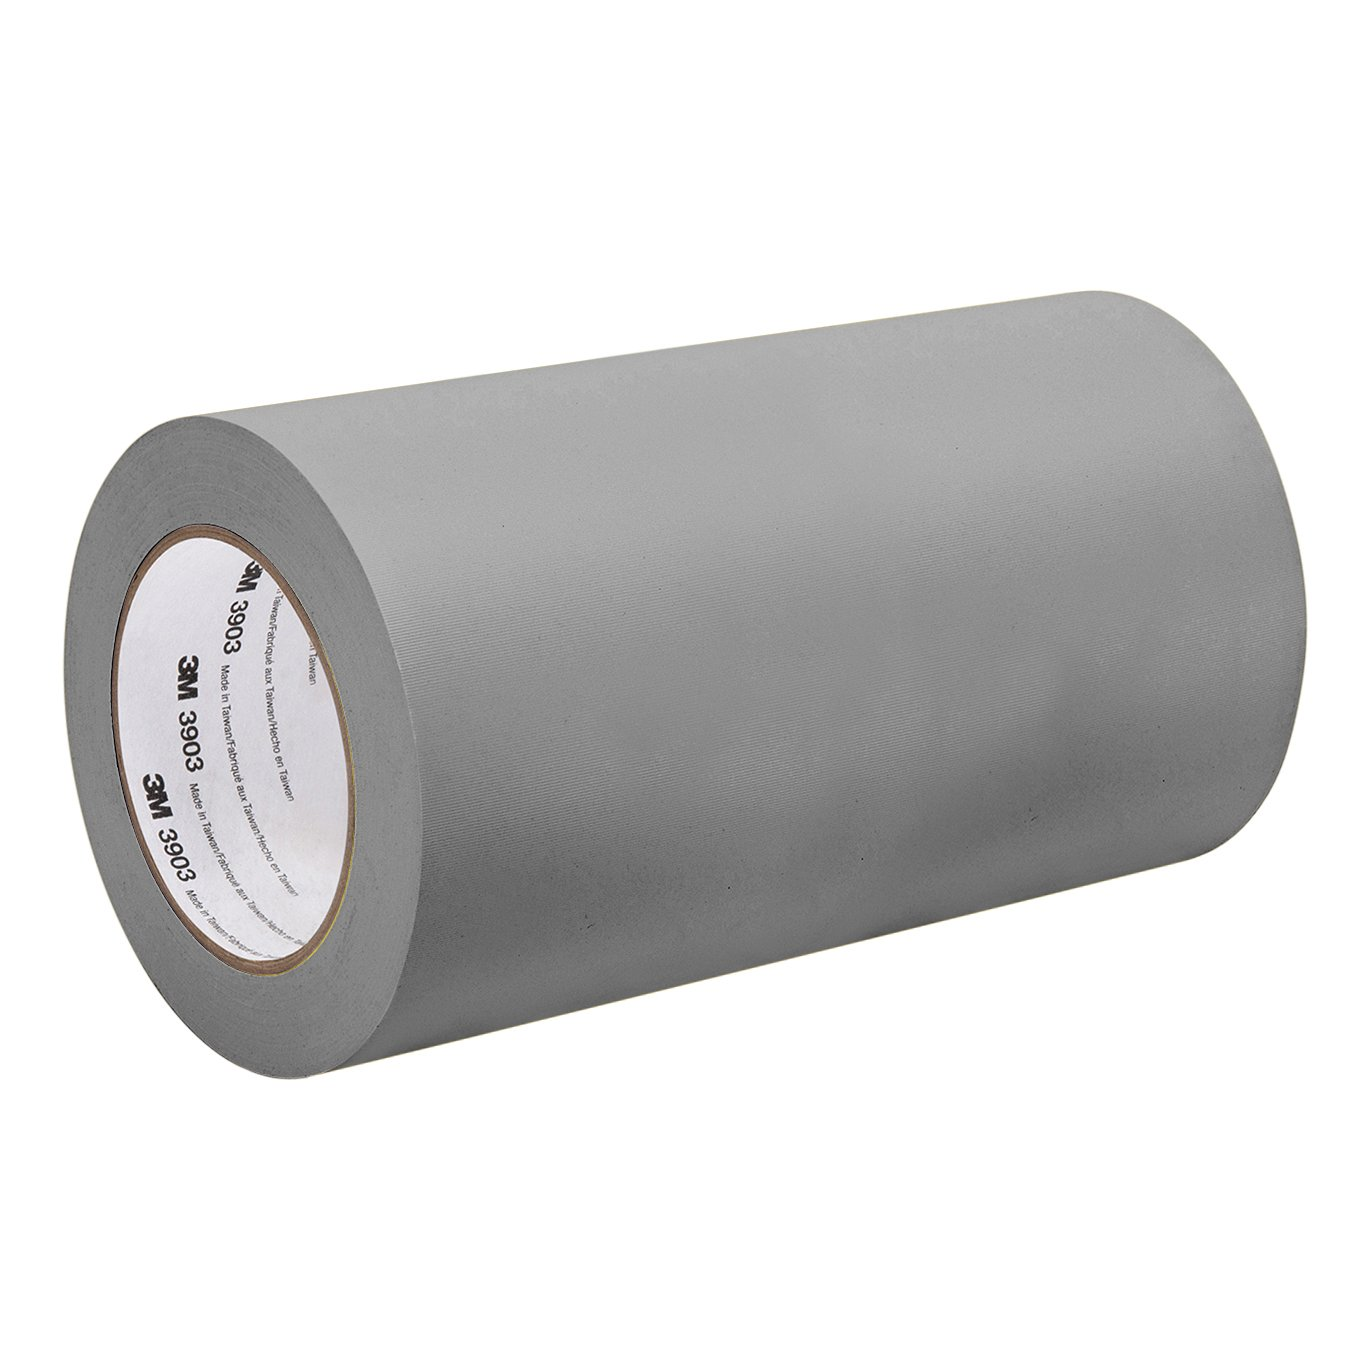 50 yd 3M 3903 17.5IN X 50YD GRAY Grey Vinyl//Rubber Adhesive Duct Tape 3903 12.6 psi Tensile Strength length 17.5 width